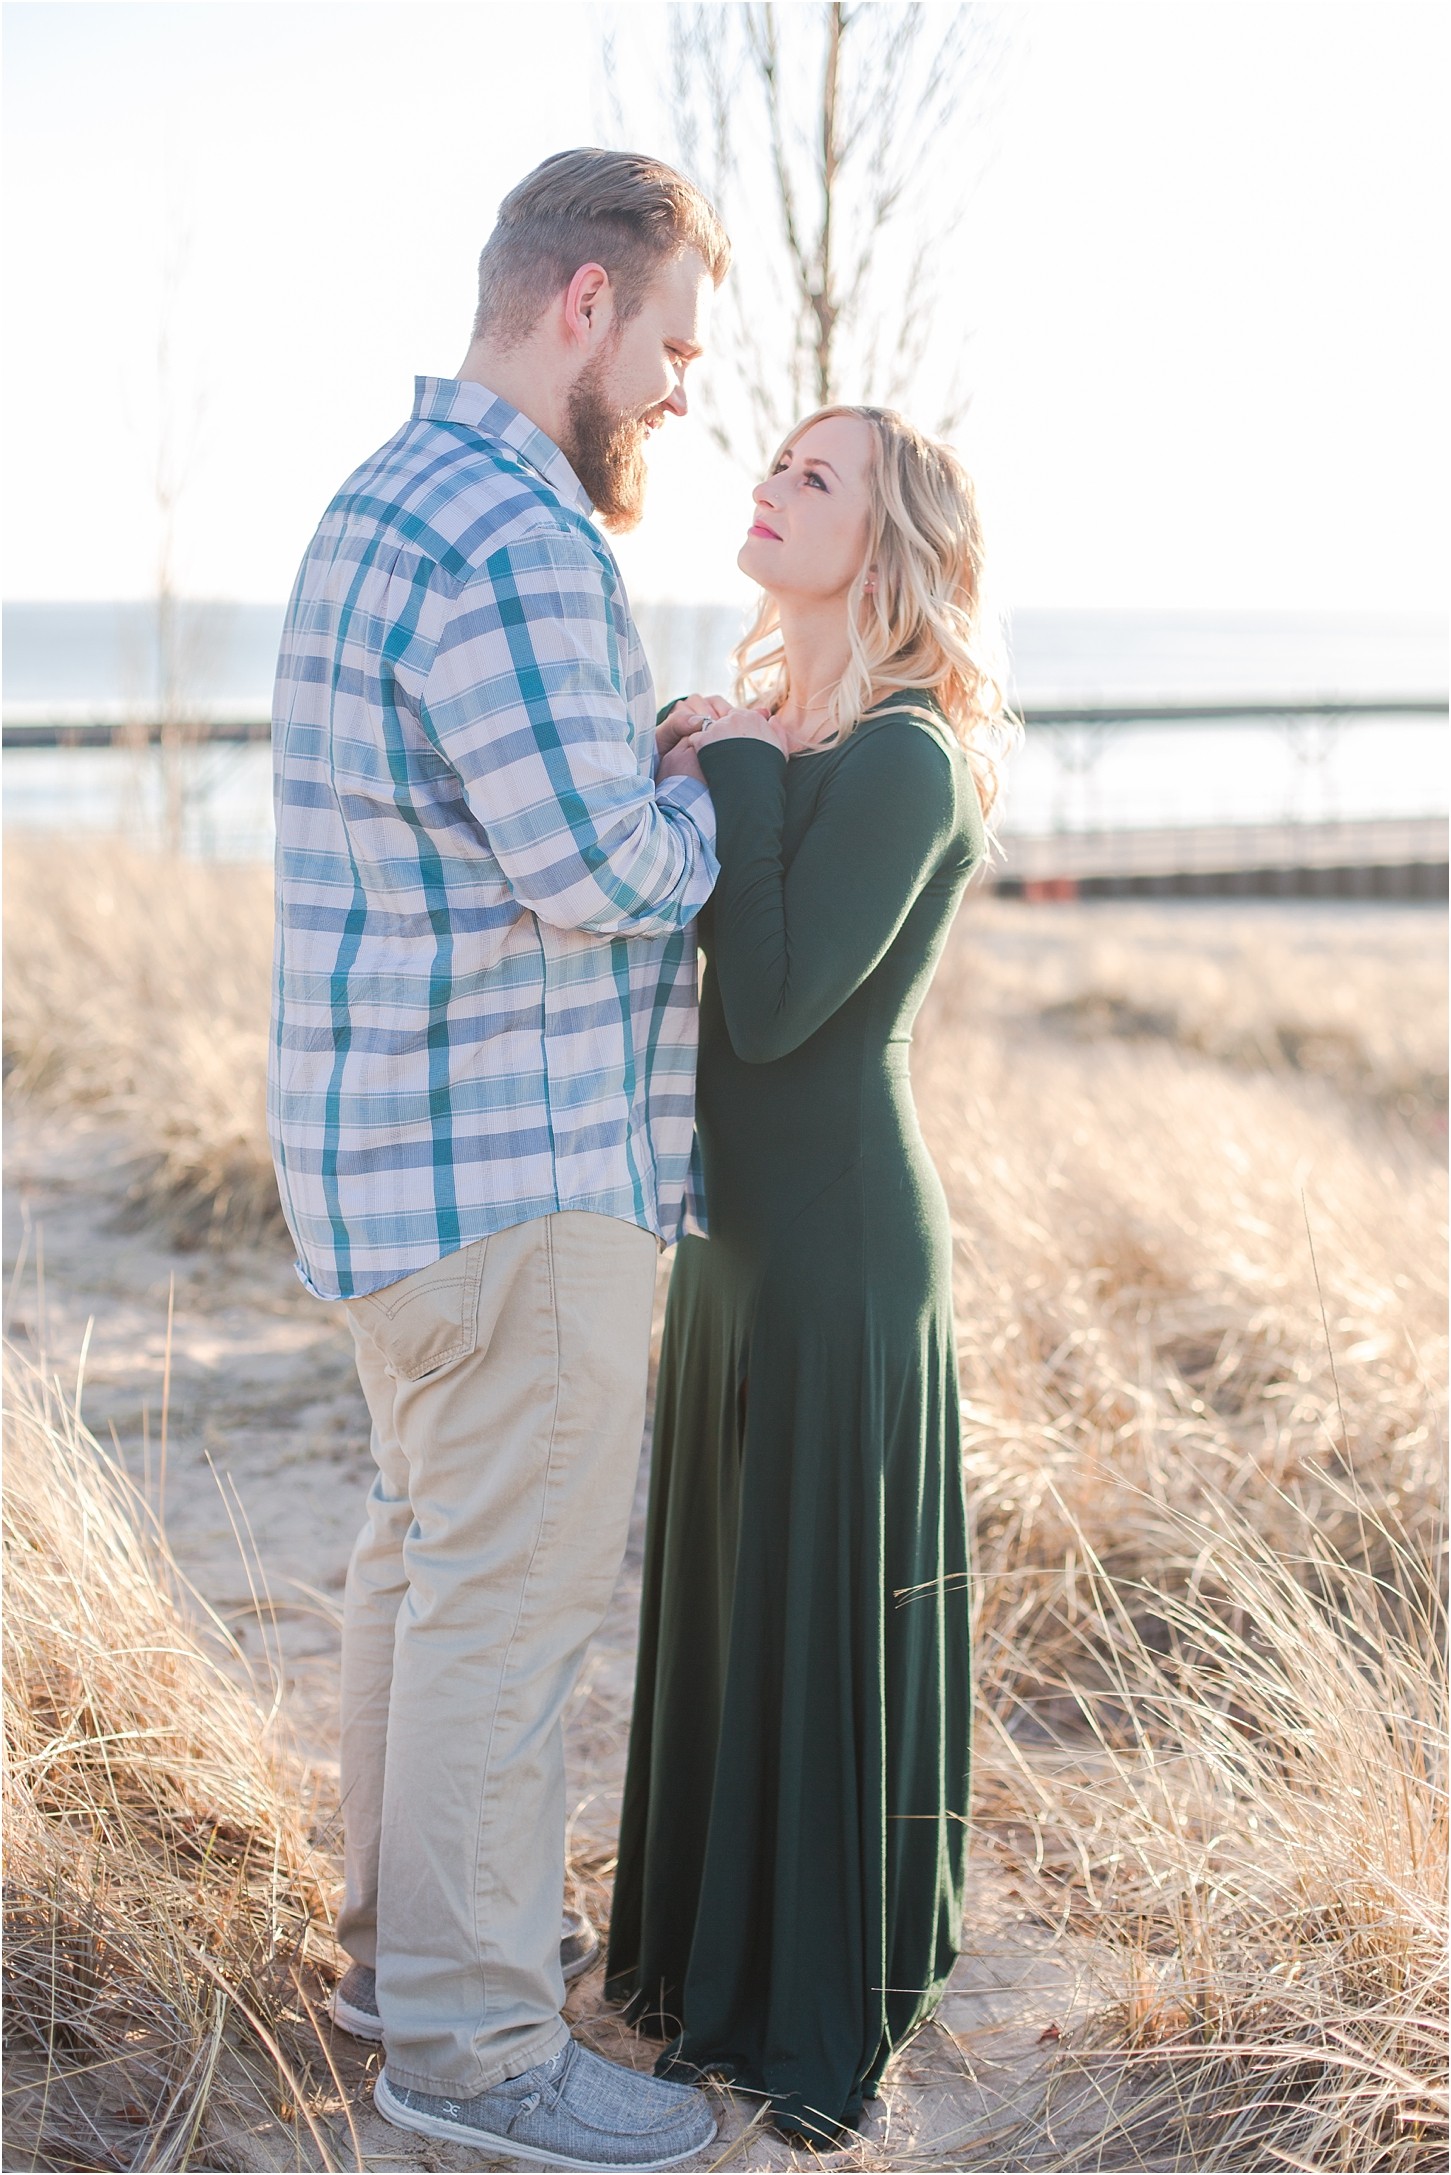 romantic-sunset-beach-engagement-photos-at-silver-beach-in-saint-joseph-mi-by-courtney-carolyn-photography_0033.jpg